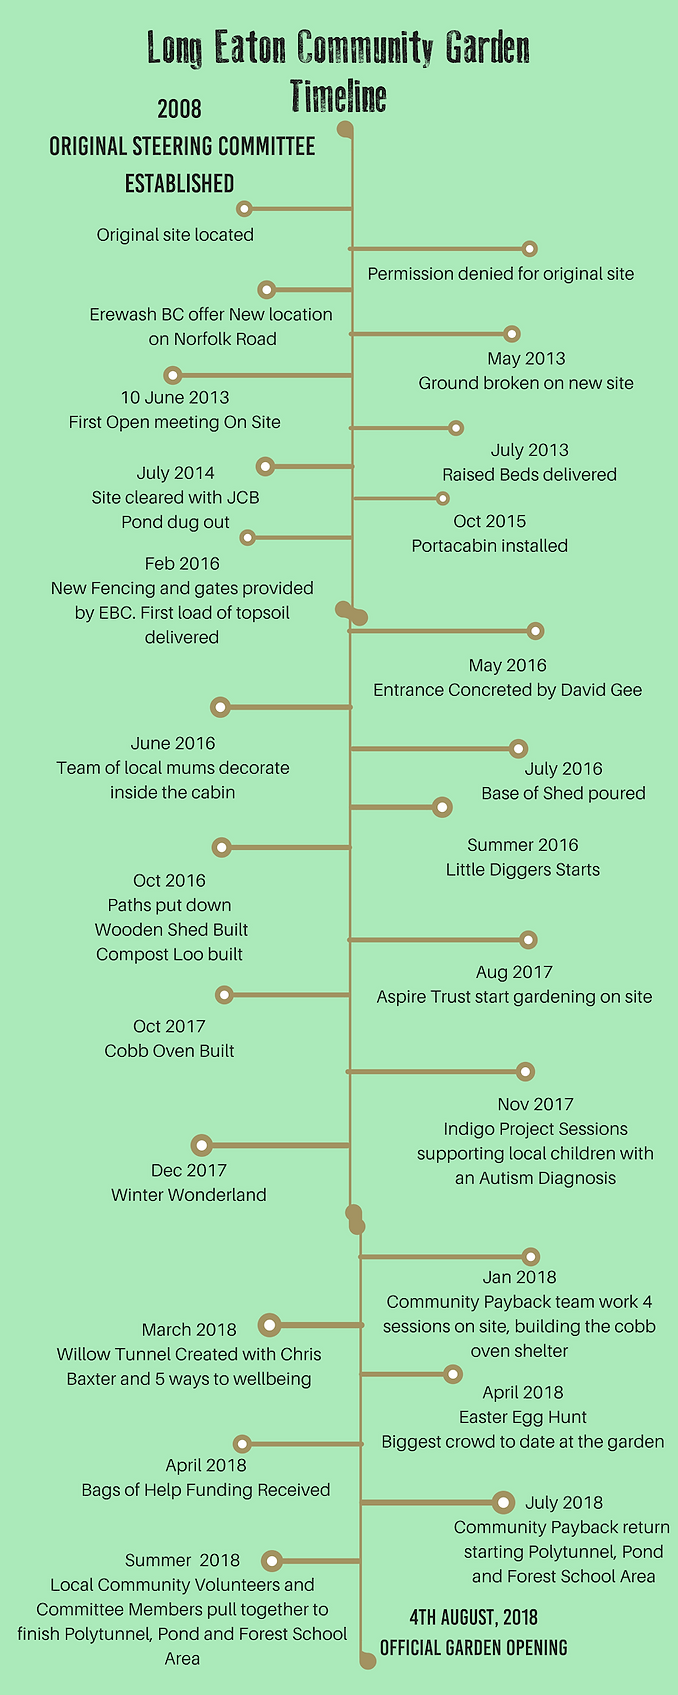 CG timeline infographic.png